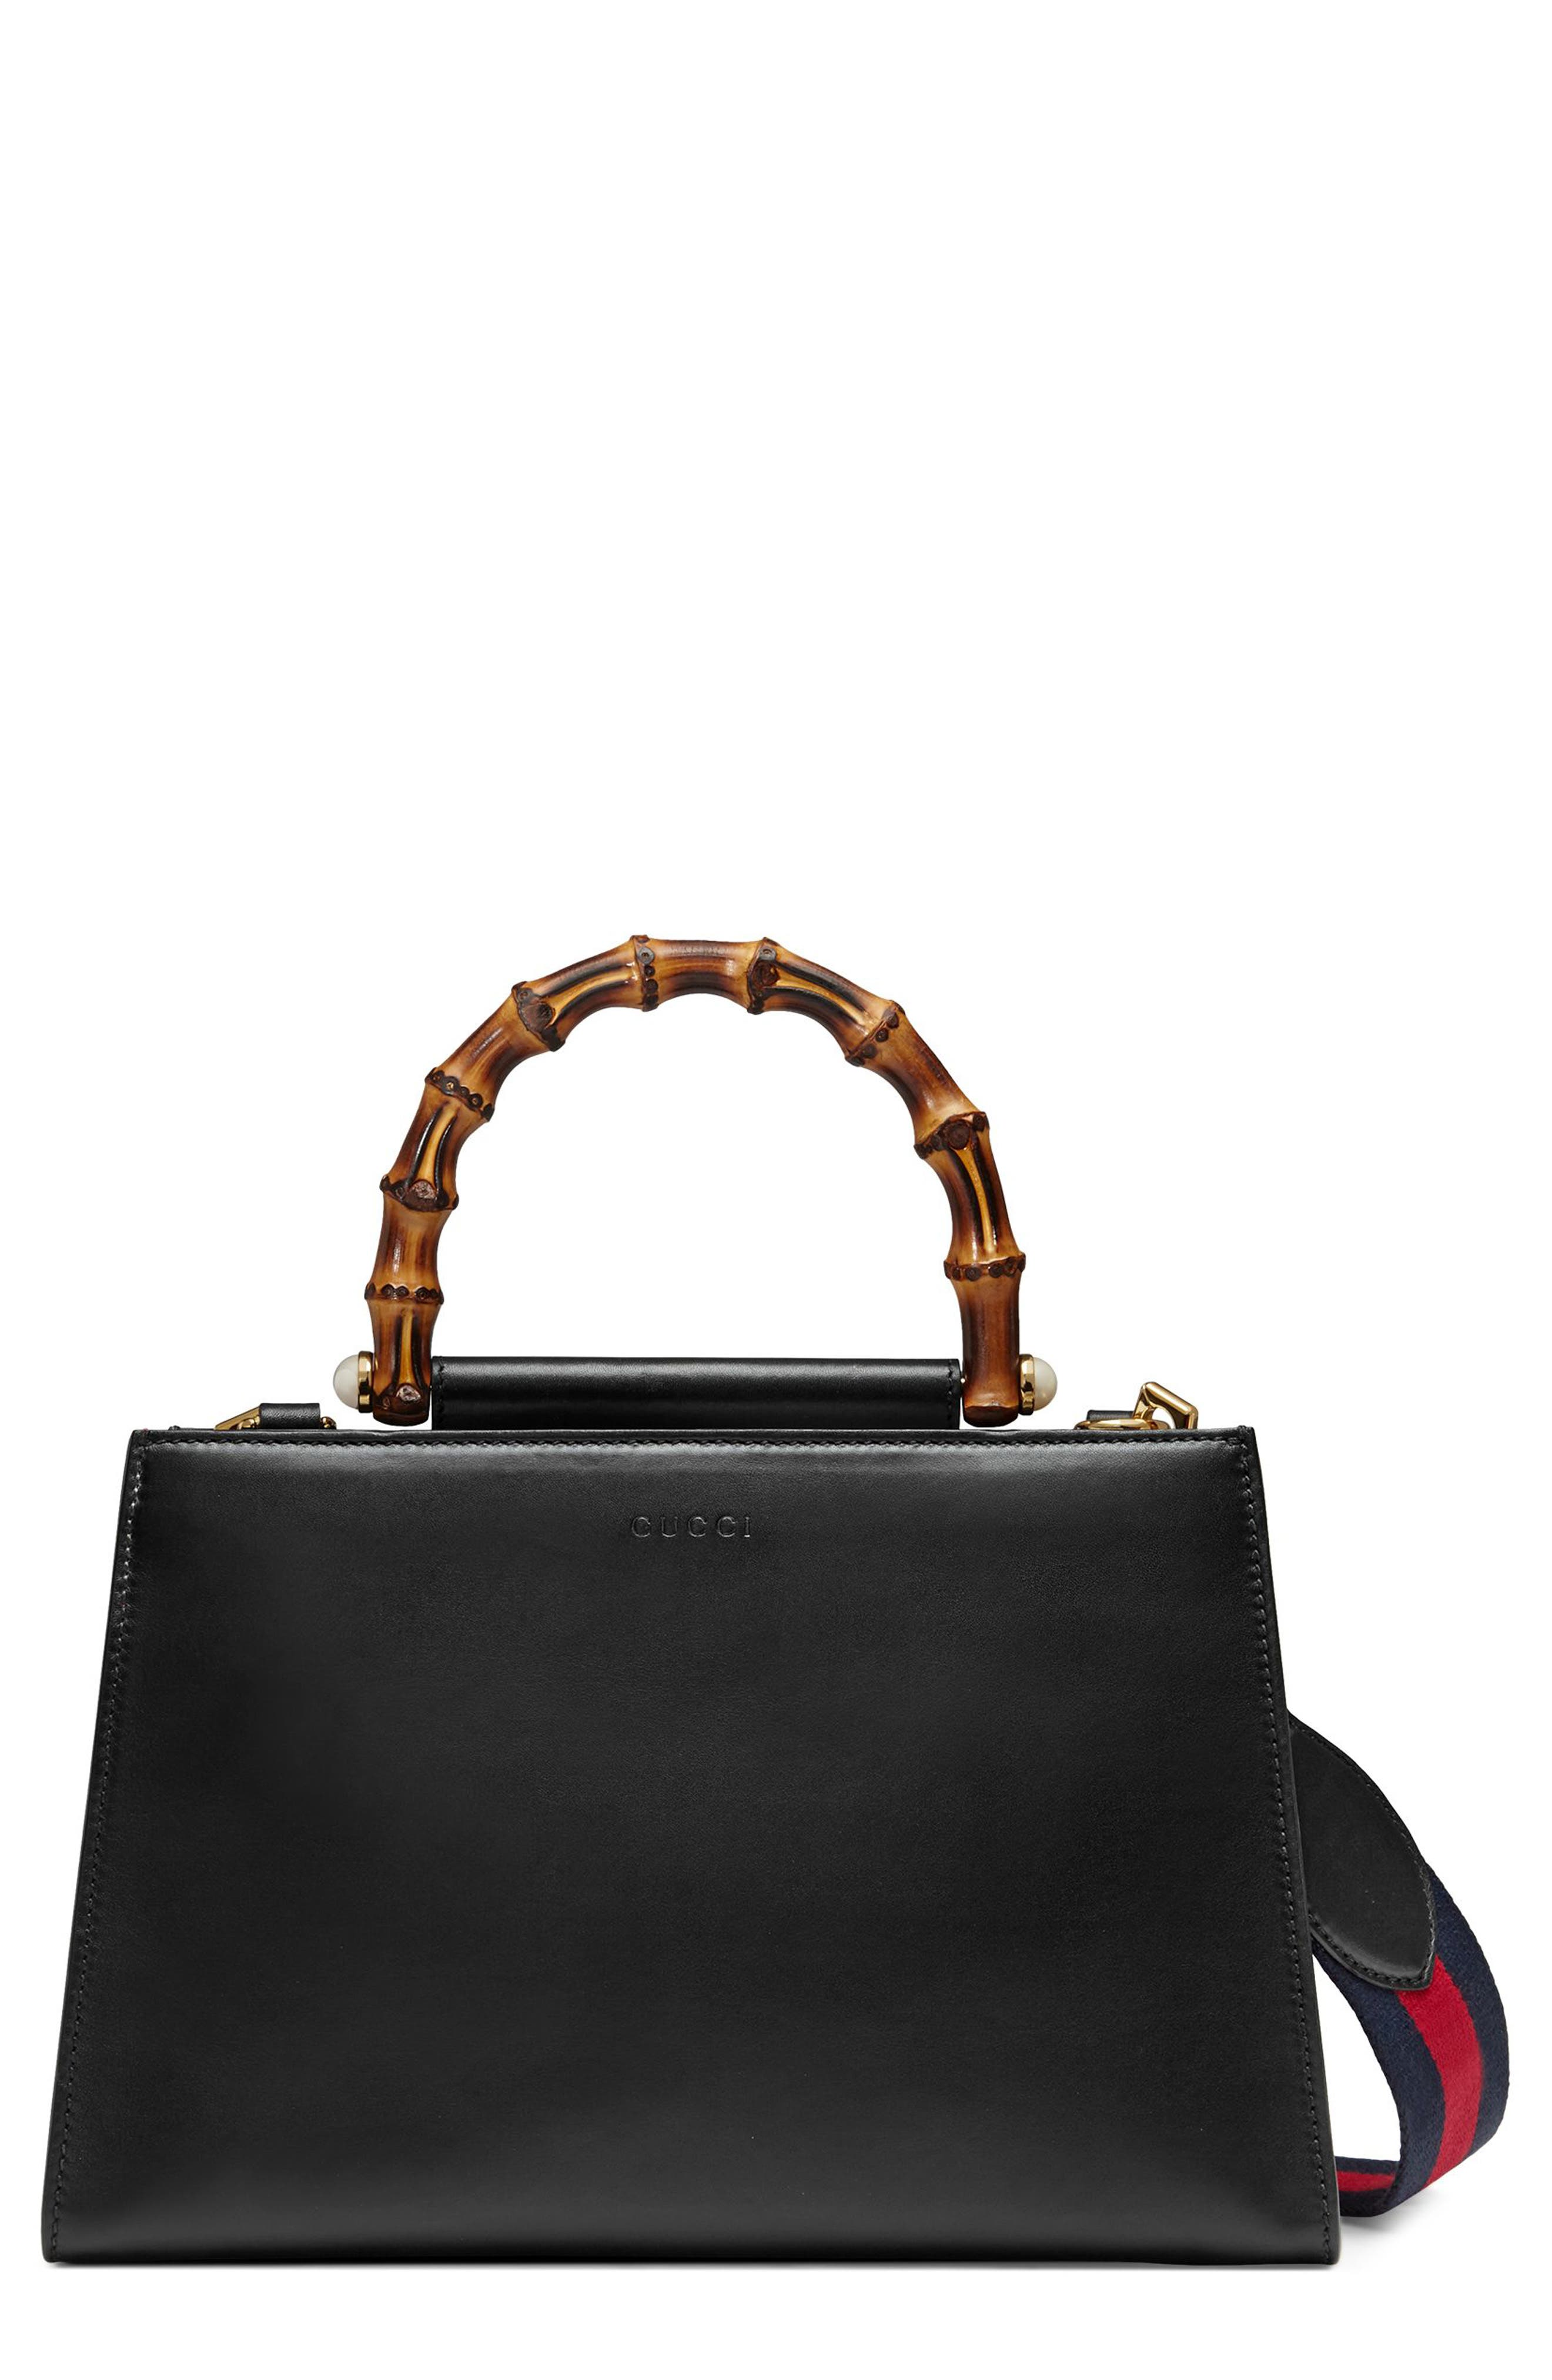 Alternate Image 1 Selected - Gucci Medium Nymphea Bicolor Leather Top Handle Satchel